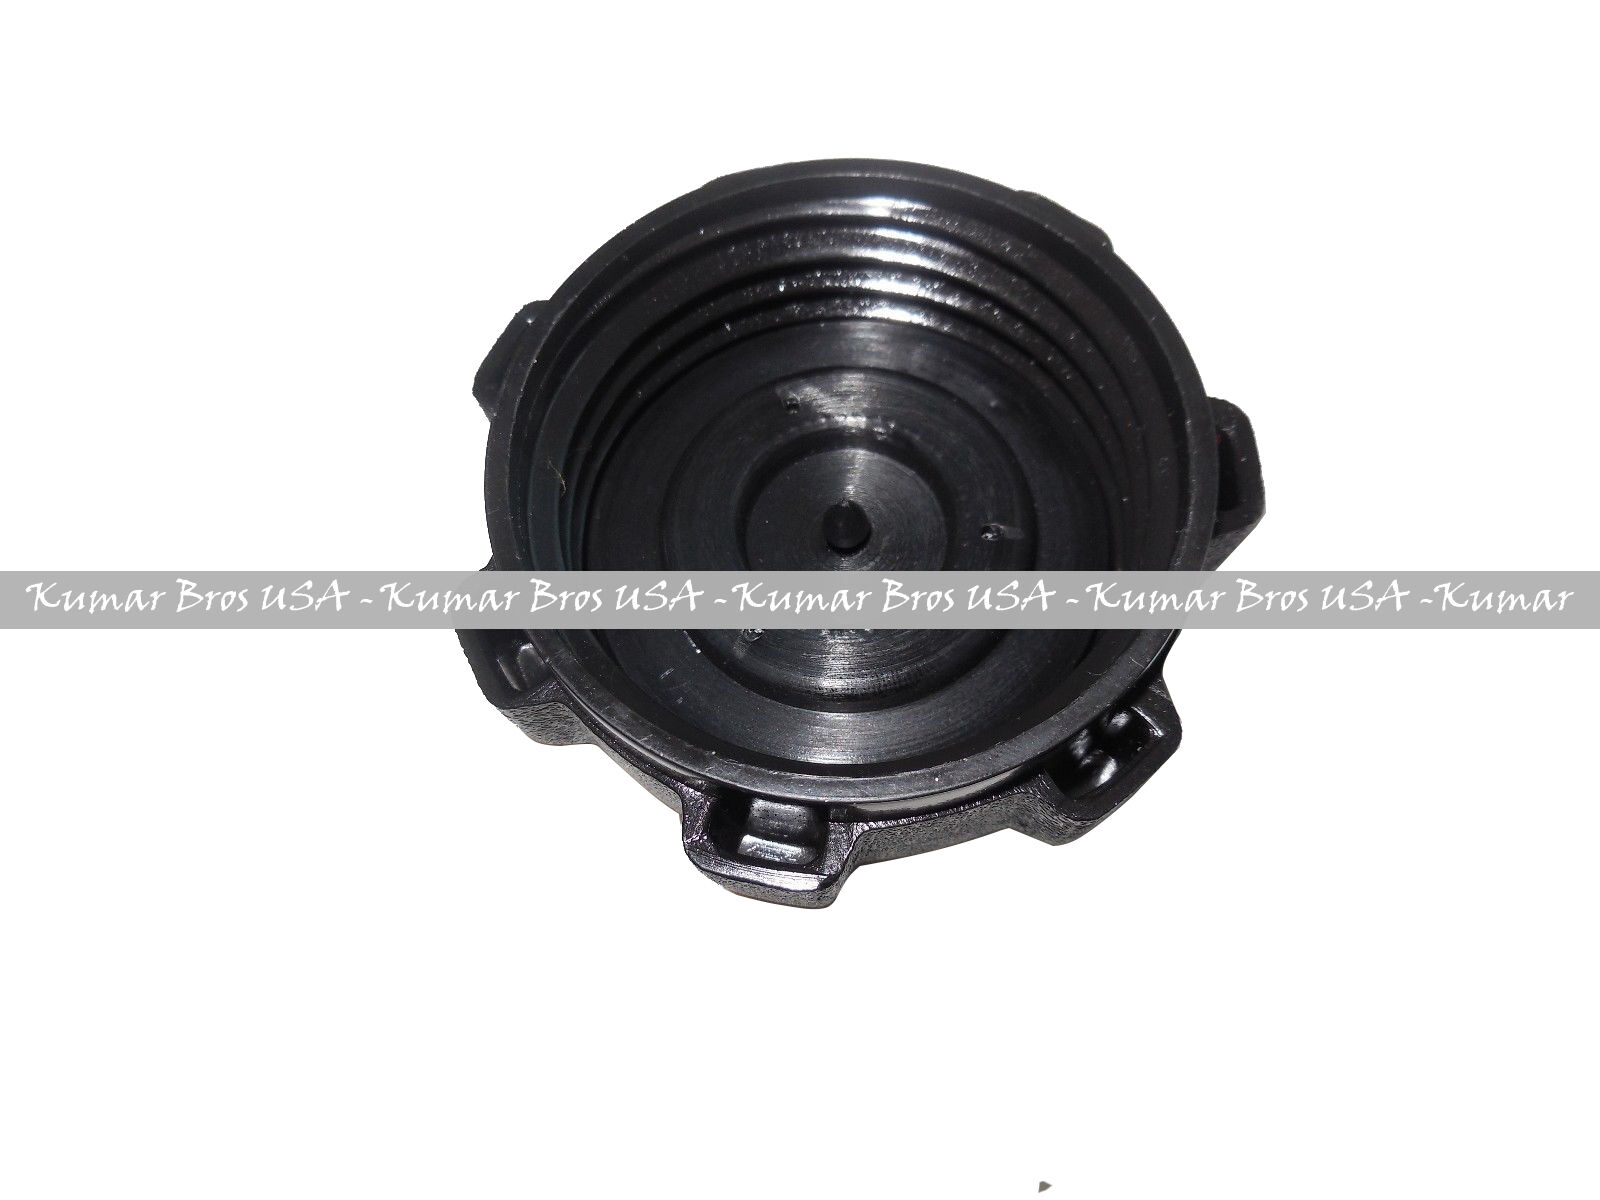 For FUEL GAS CAP USED ON COLEMAN GENERATOR 0055340//005667//0064057//0057397//0052015